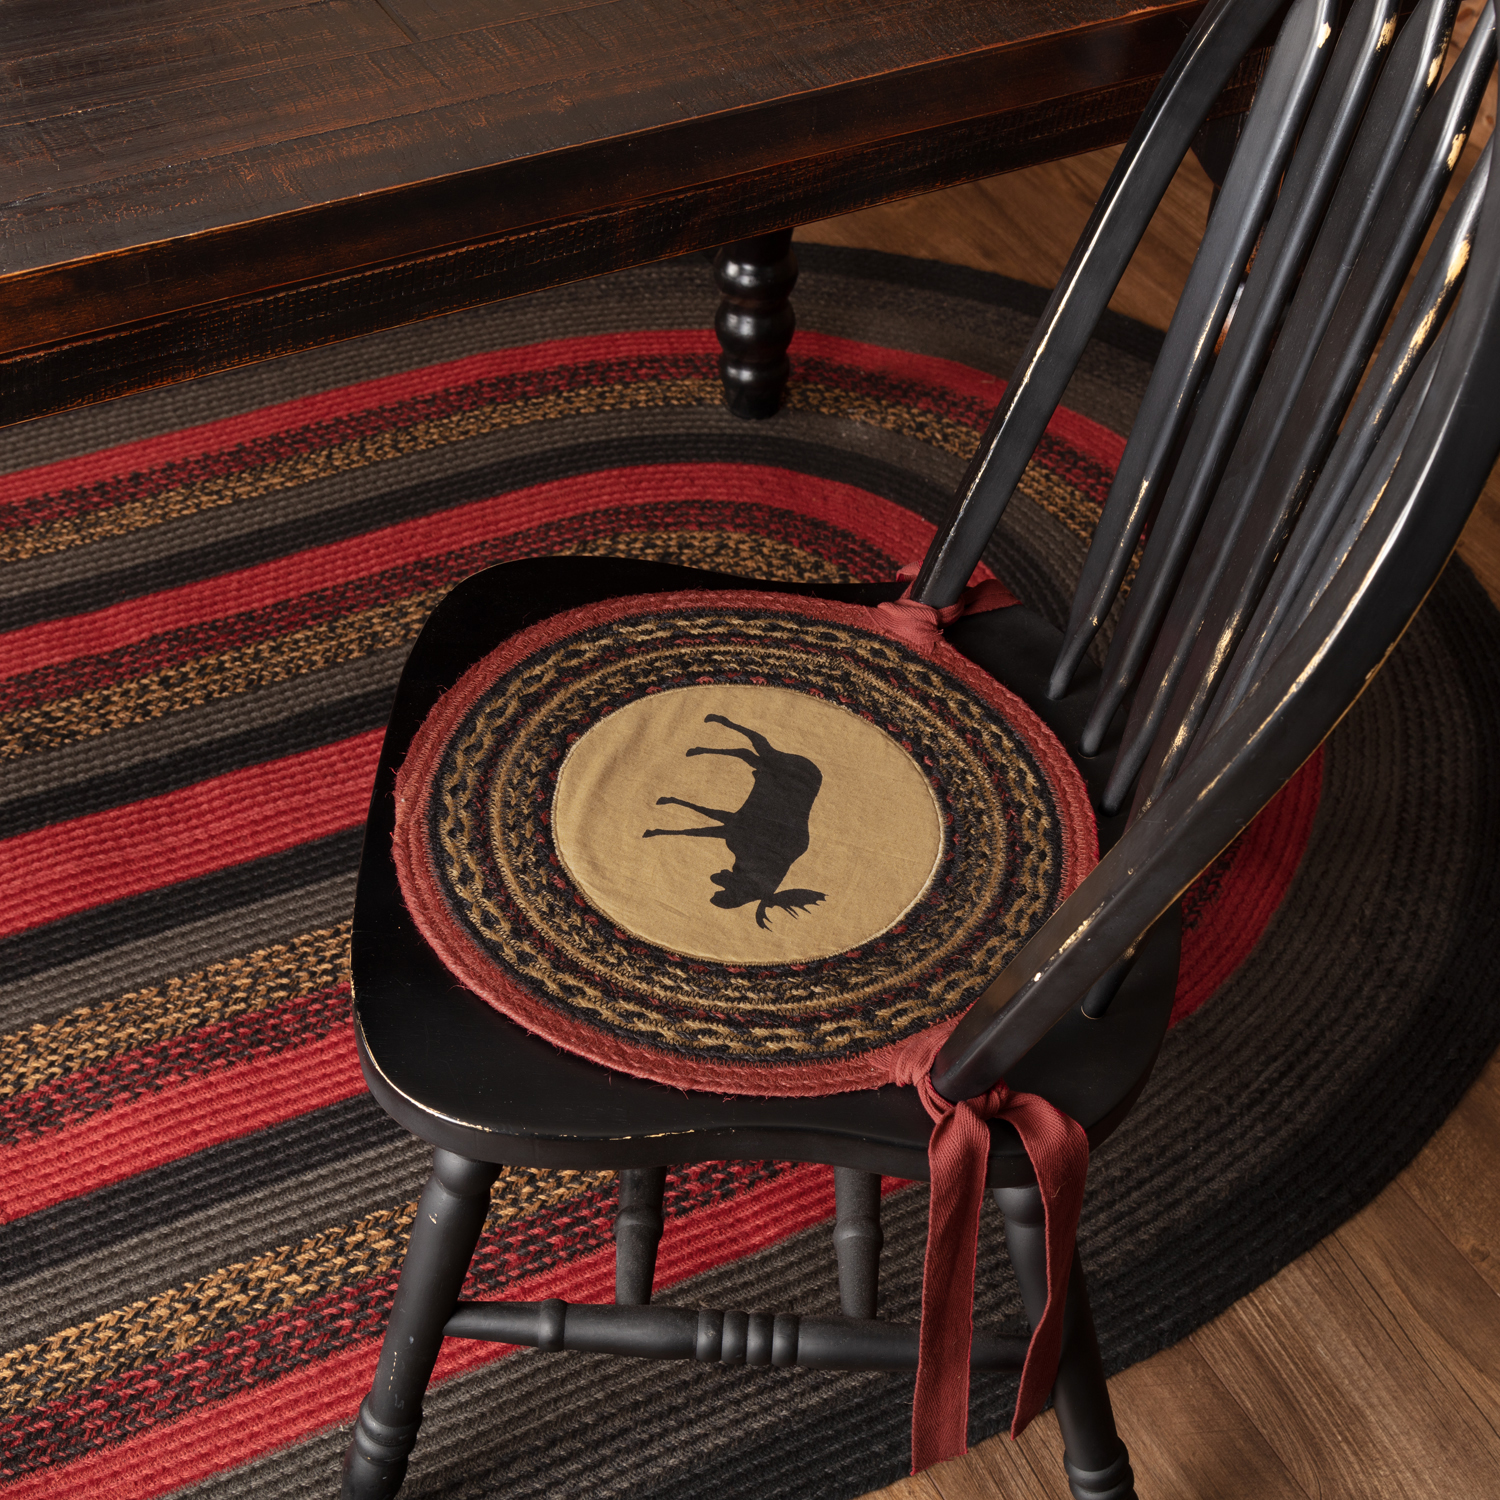 Cumberland-Moose-Applique-Jute-Chair-Pad-Set-of-6-image-1